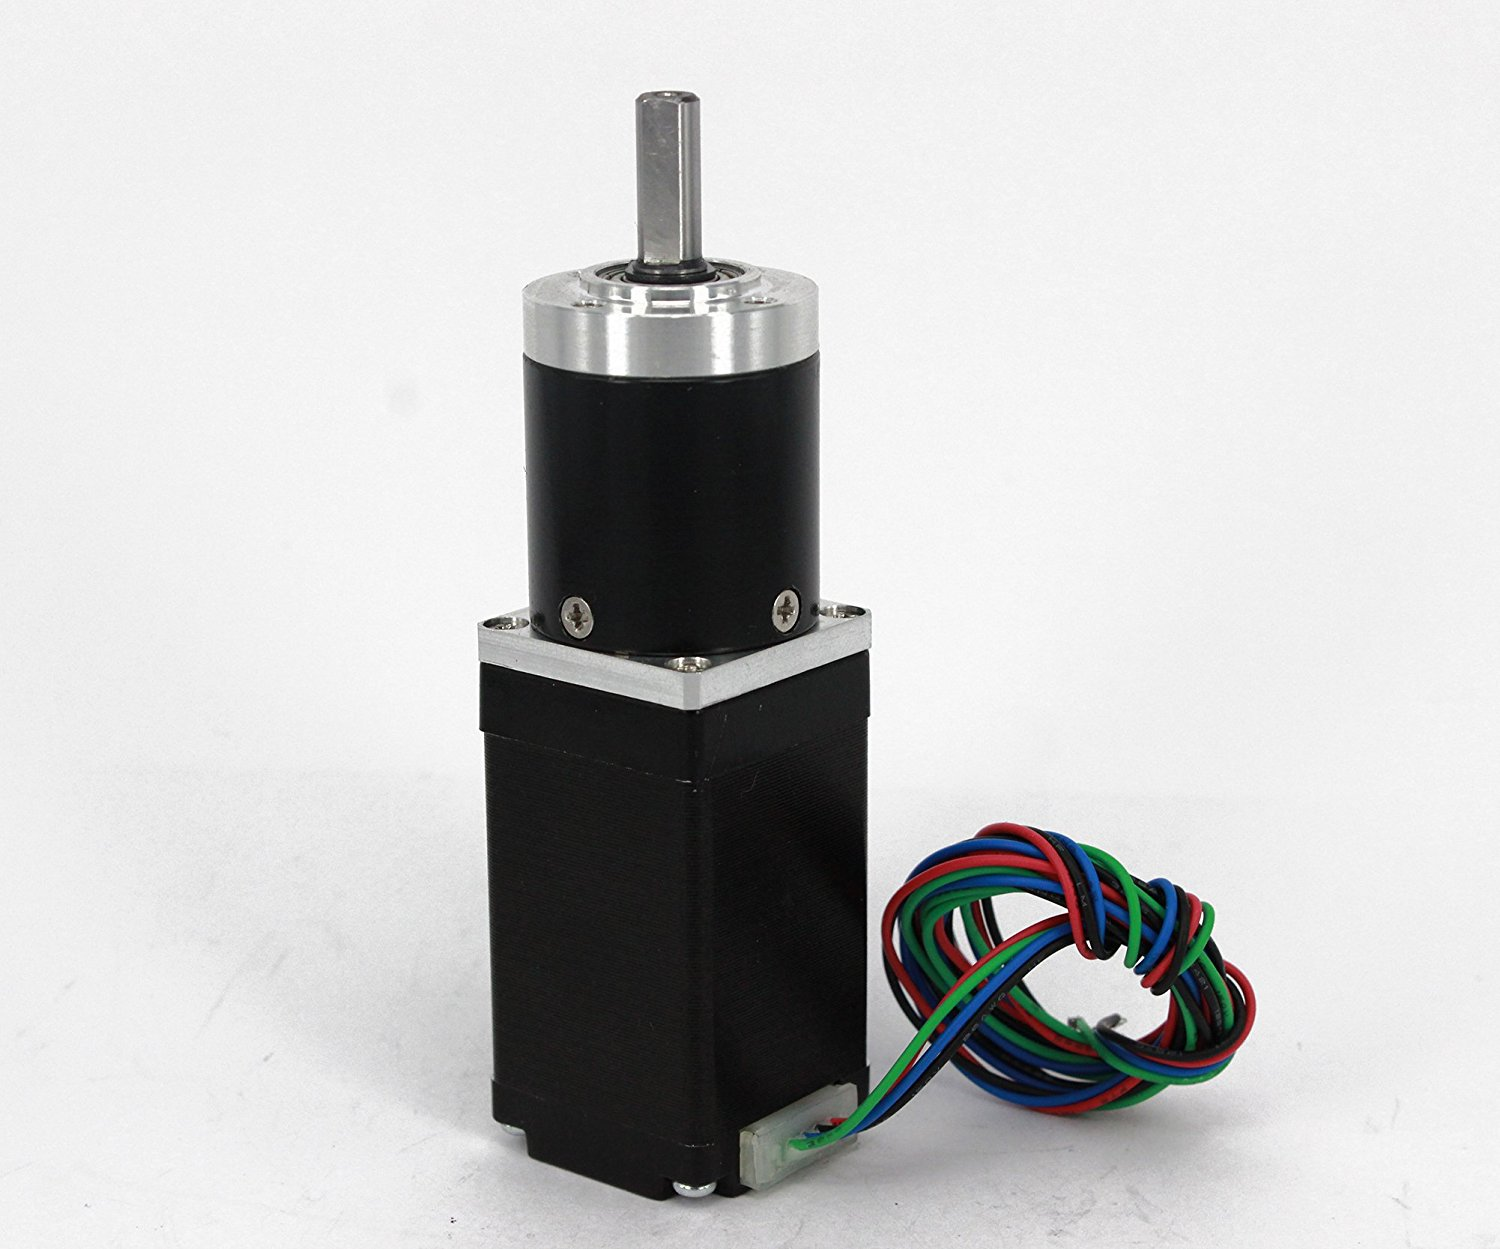 Gear Stepper Motor NEMA 11 L=50mm with Planetary Gearbox Ratio 9~20:1 (Ratio 9:1)